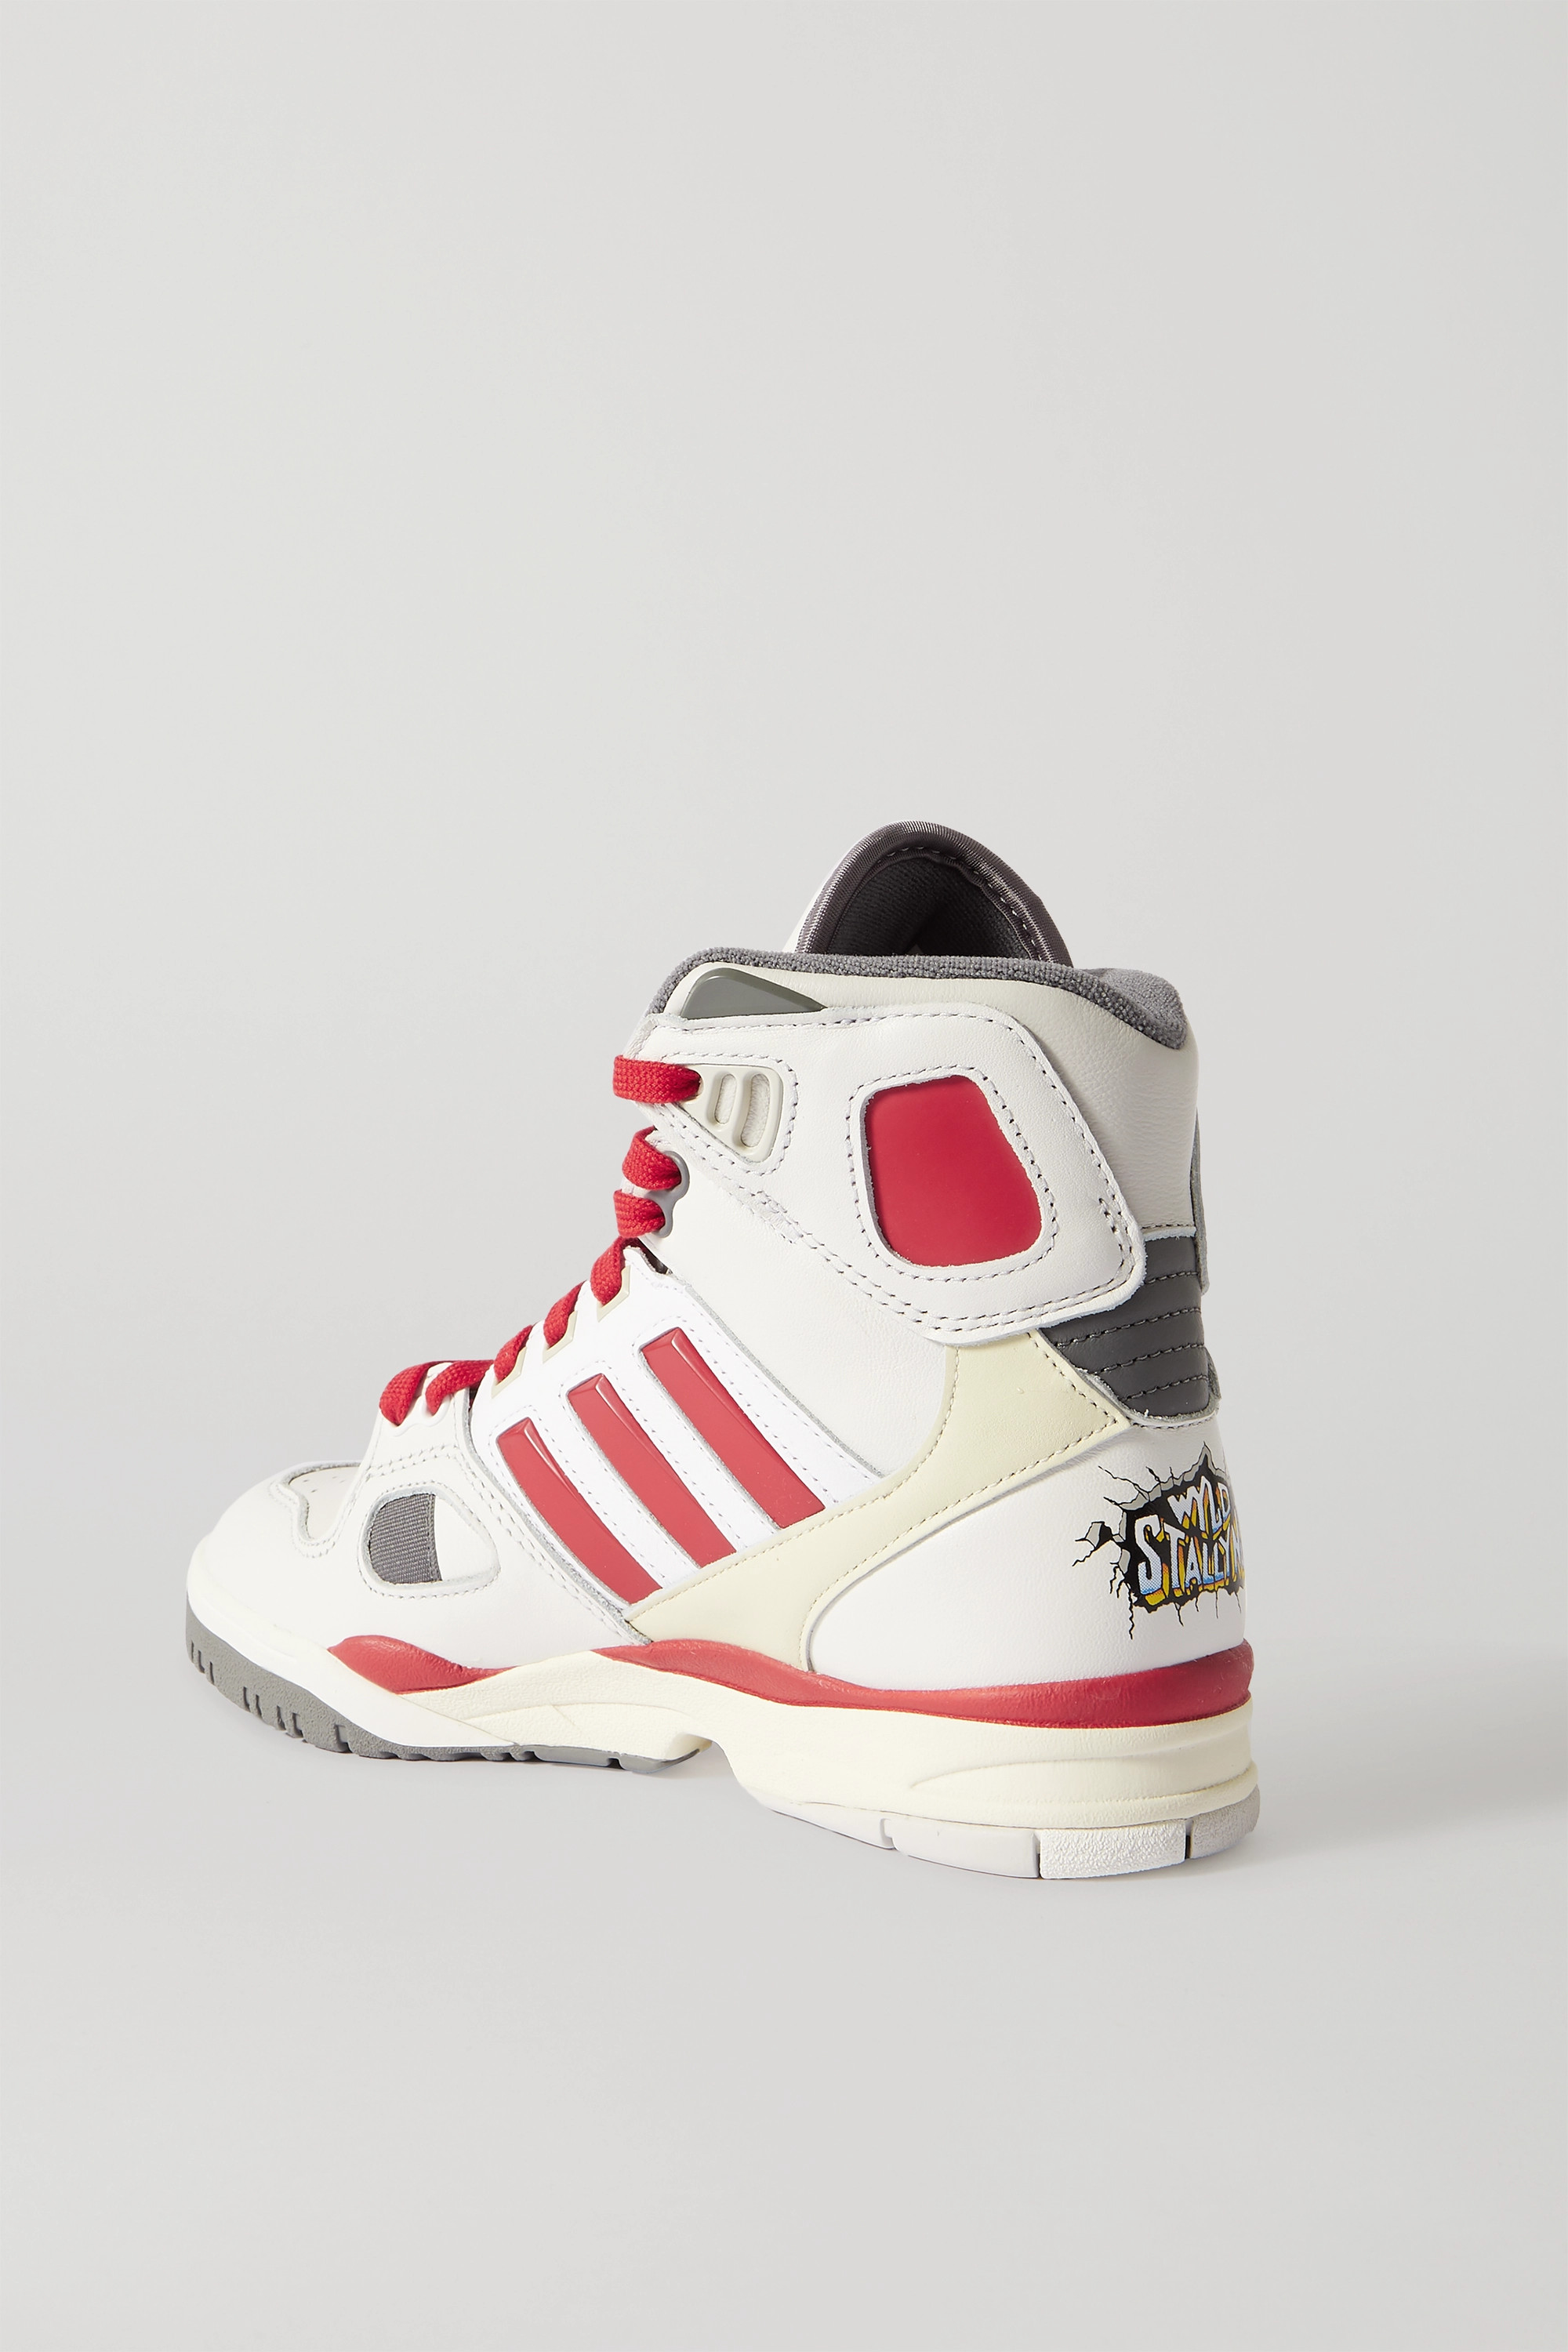 adidas Originals + Kid Cudi Torsion Artillery leather high-top sneakers